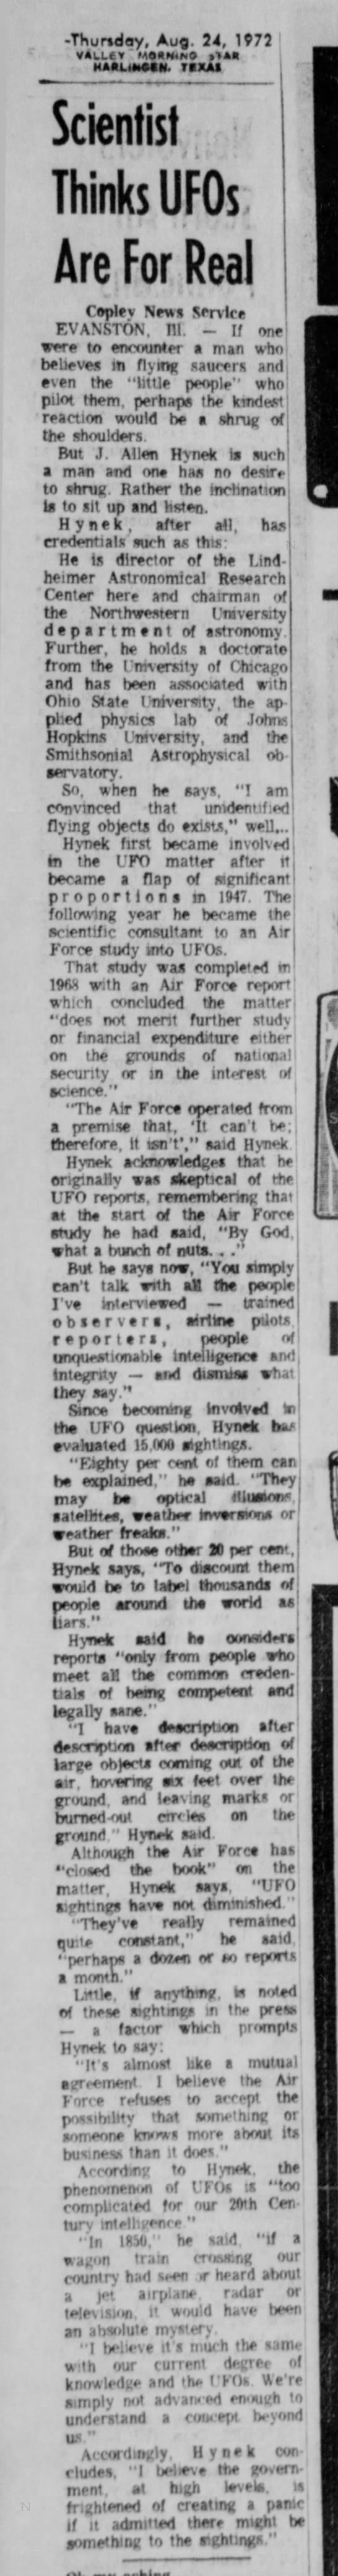 Scientist Thinks UFOs Real - VMS Aug 24 1972 -